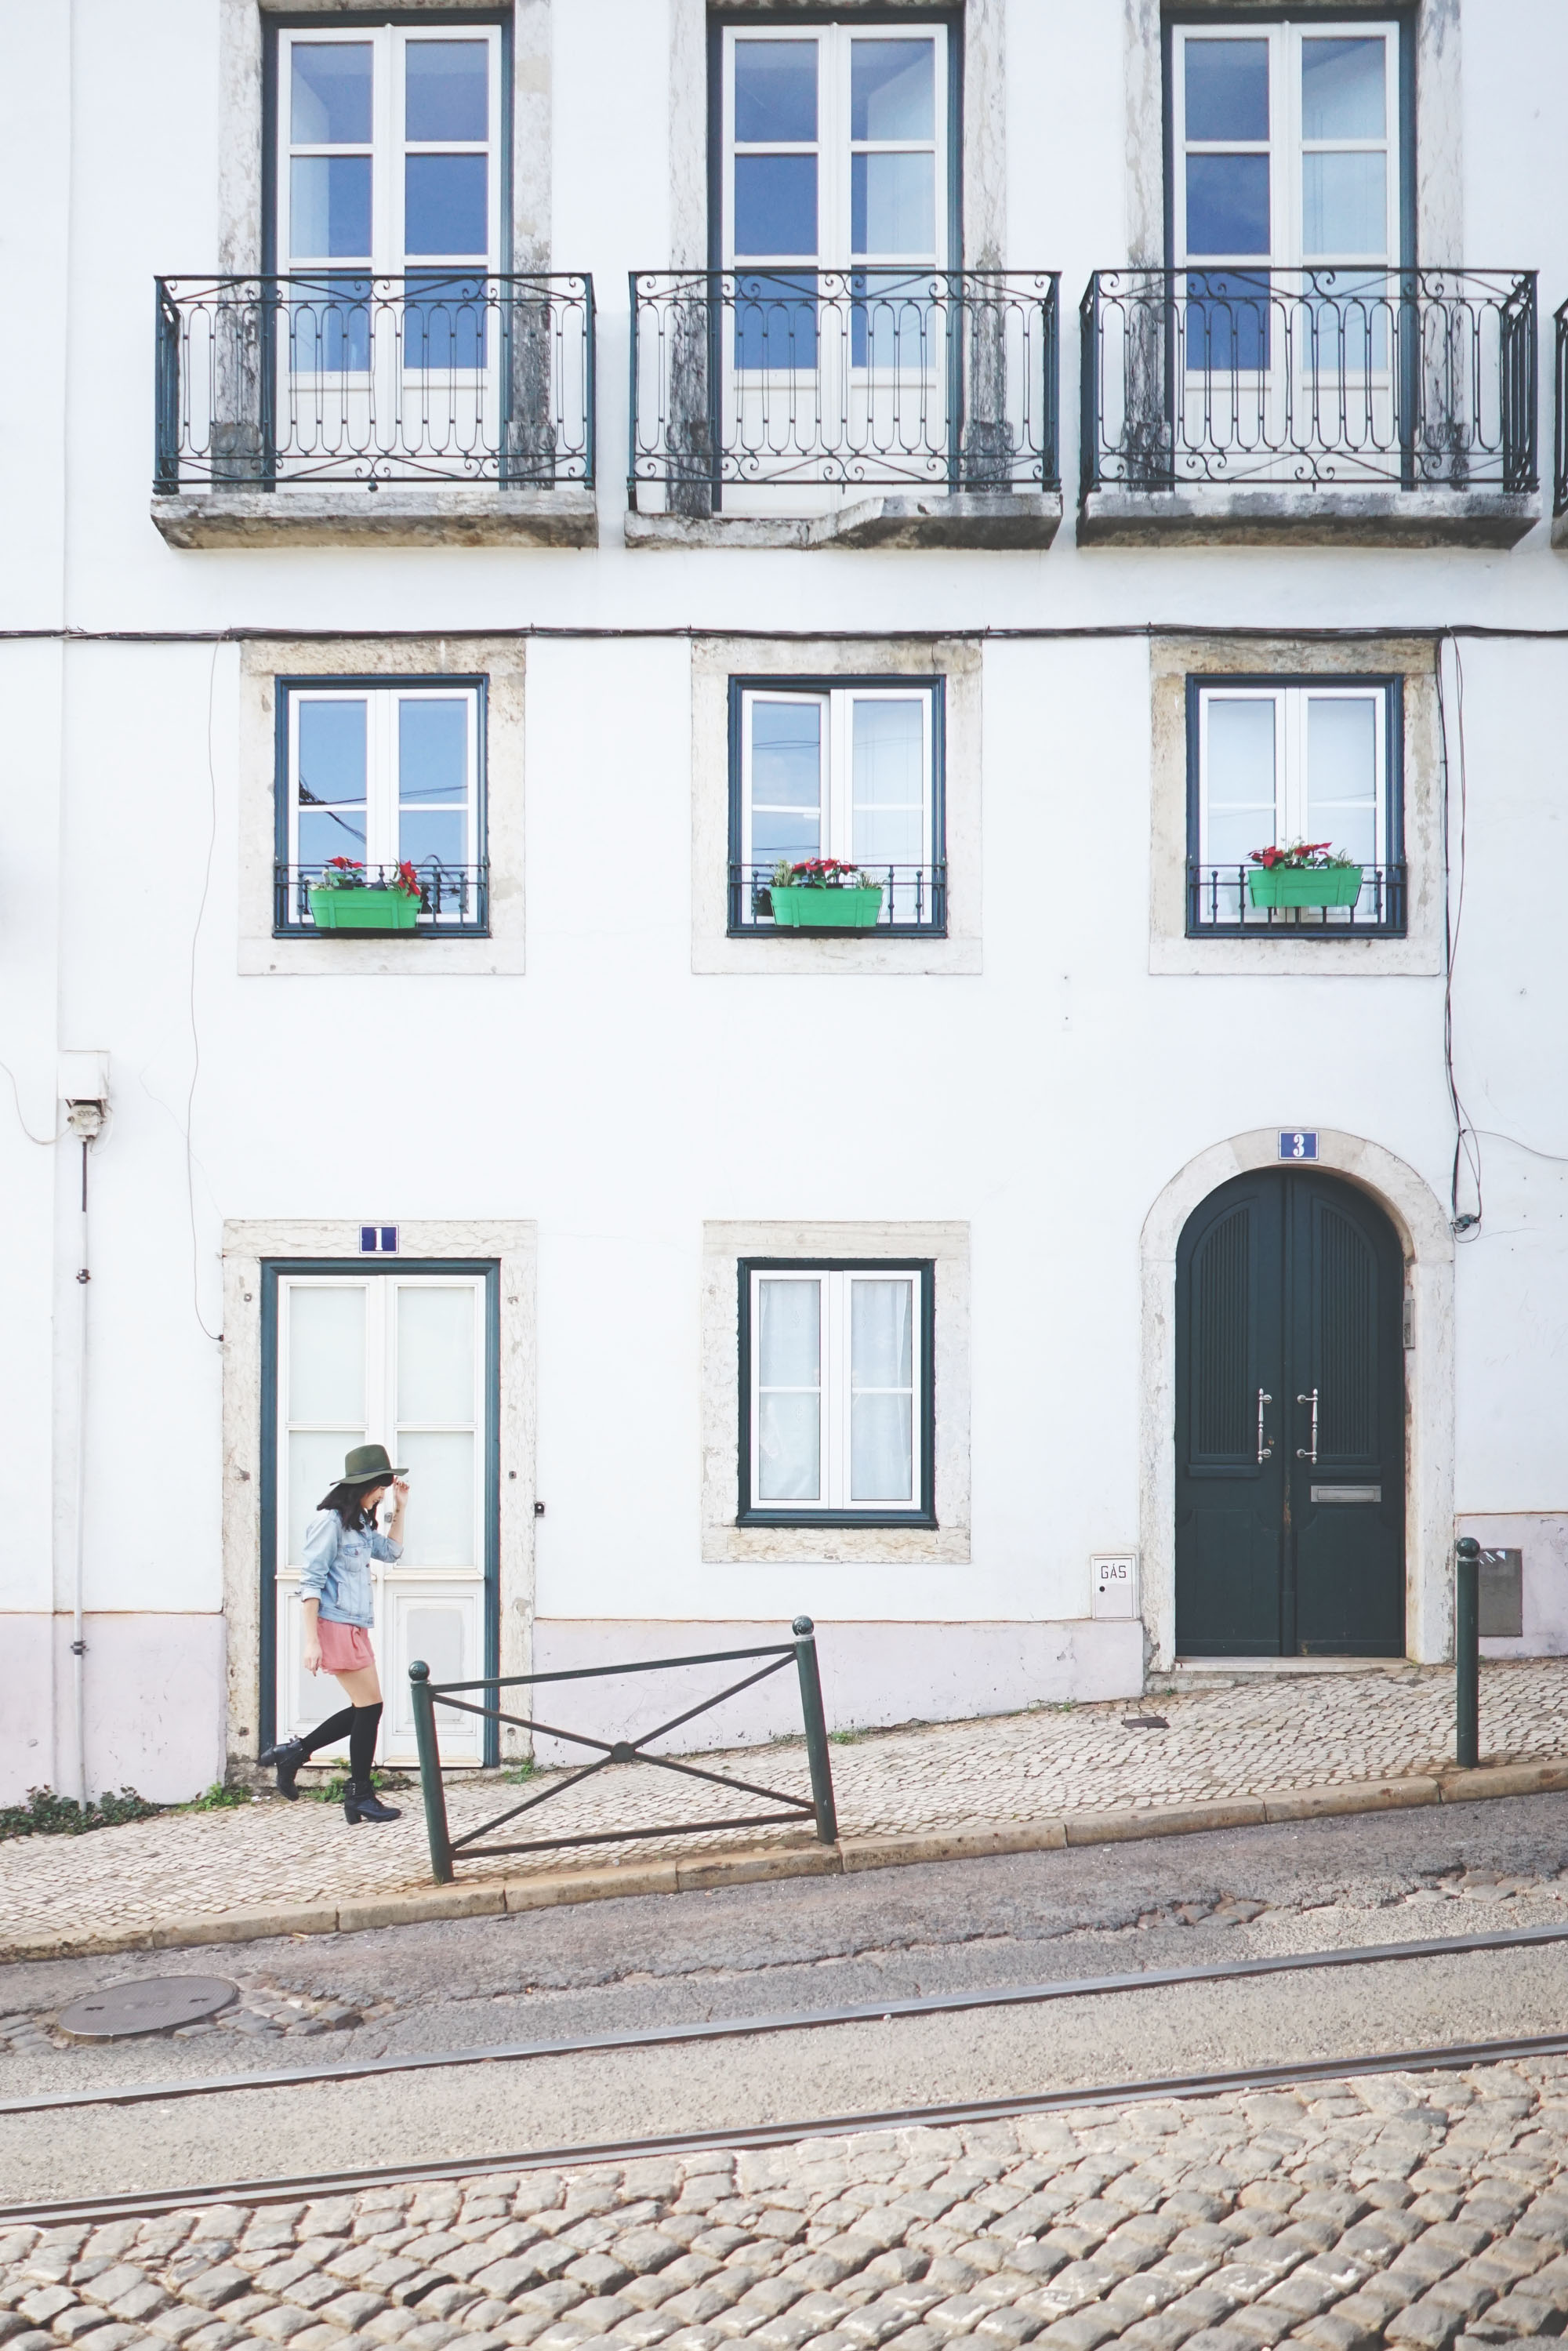 Casually strolling along one of the many uphill streets of Alfama and being nonchalant.